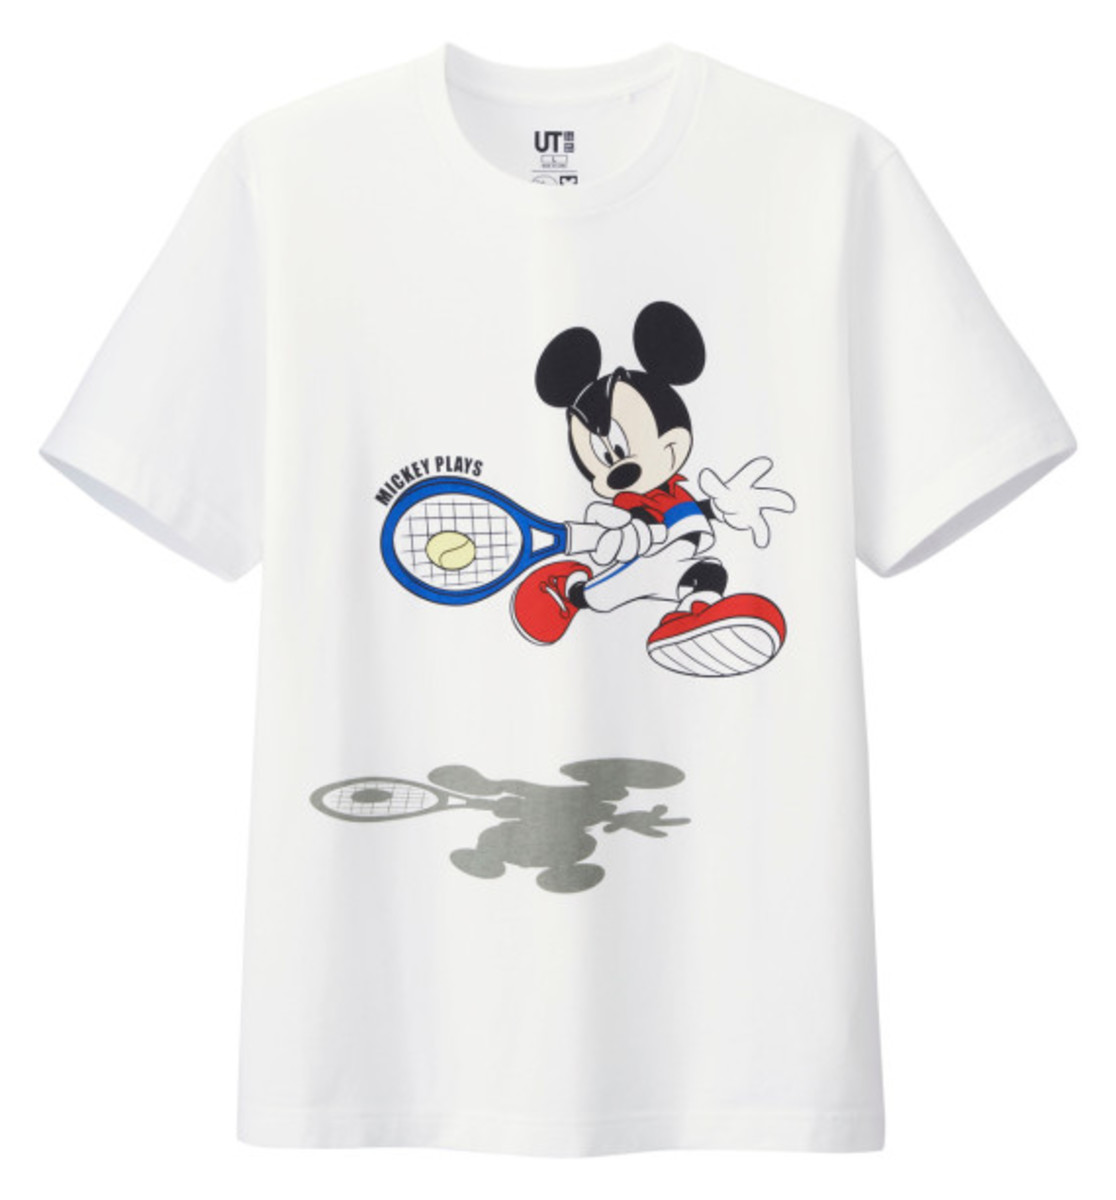 disney-uniqlo-mickey-plays-t-shirt-collection-05